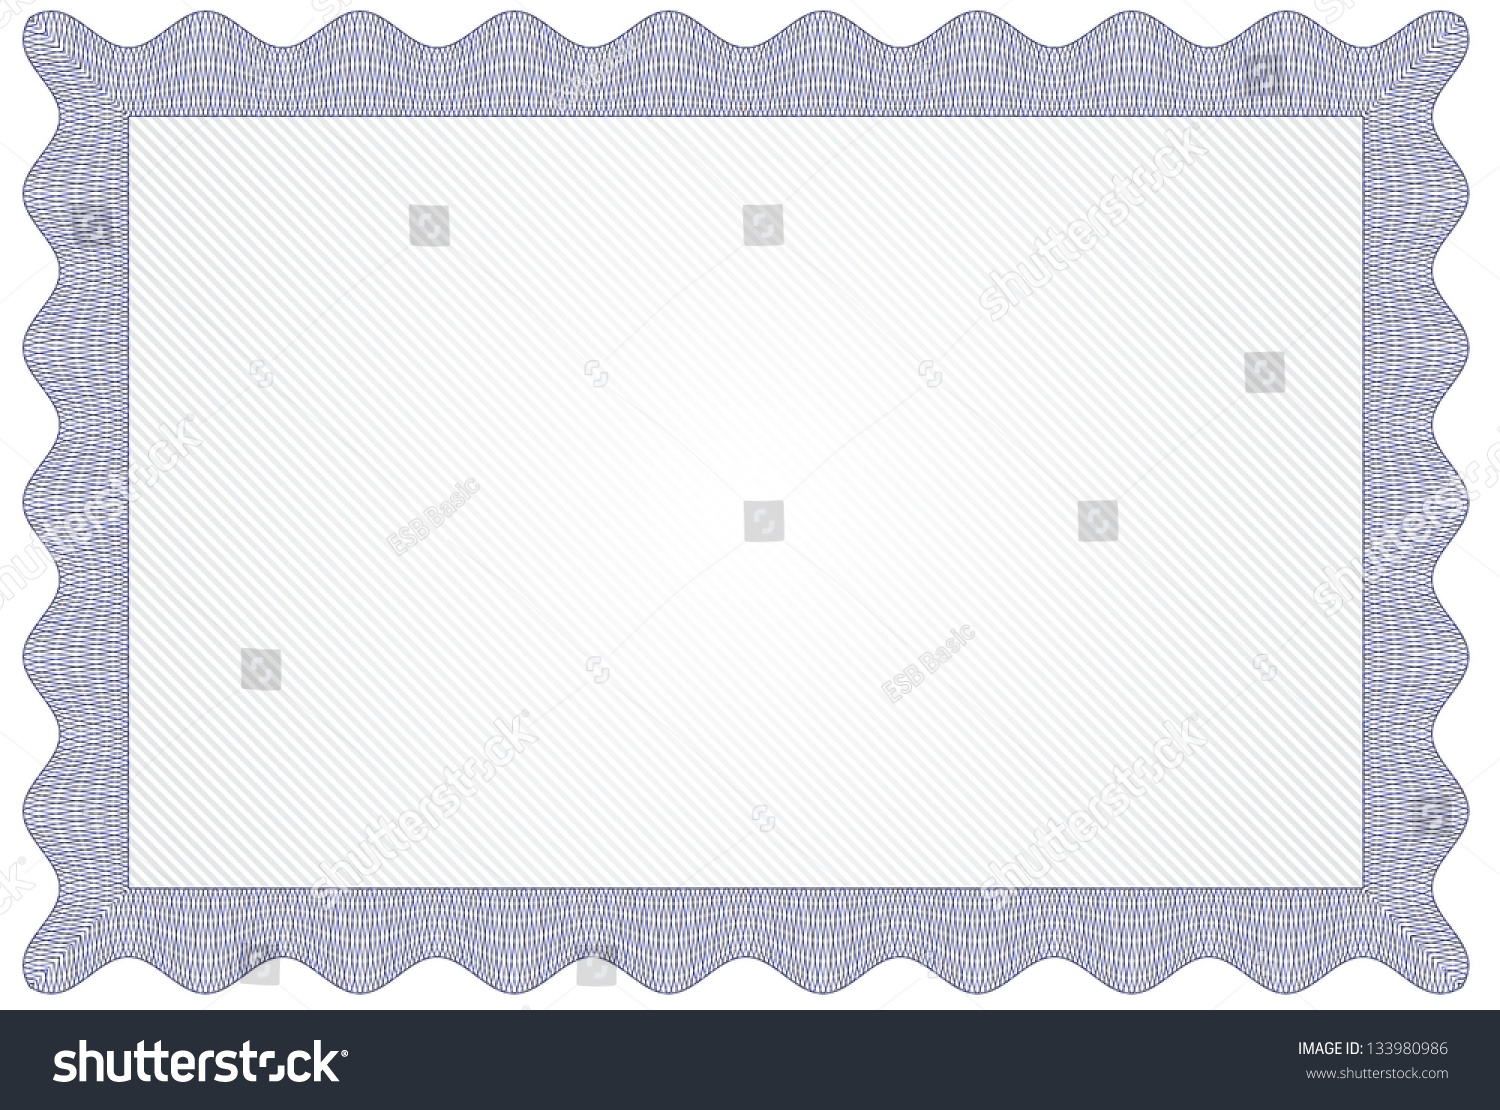 Blank Certificate Diploma Template Stock Vector 133980986 - Shutterstock